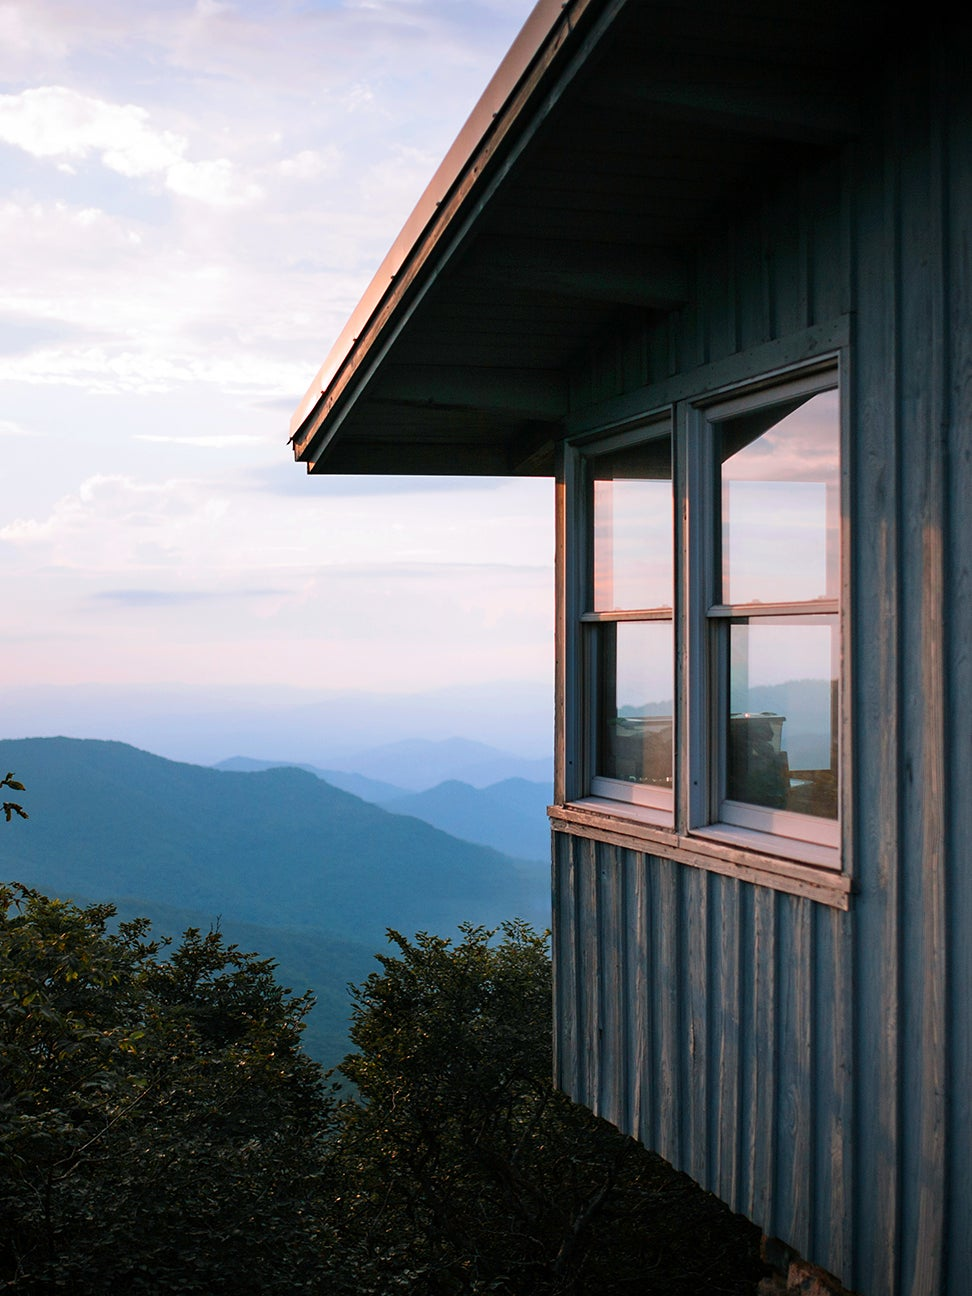 00-FEATURE-affordable-living-asheville-north-carolina-domino-1